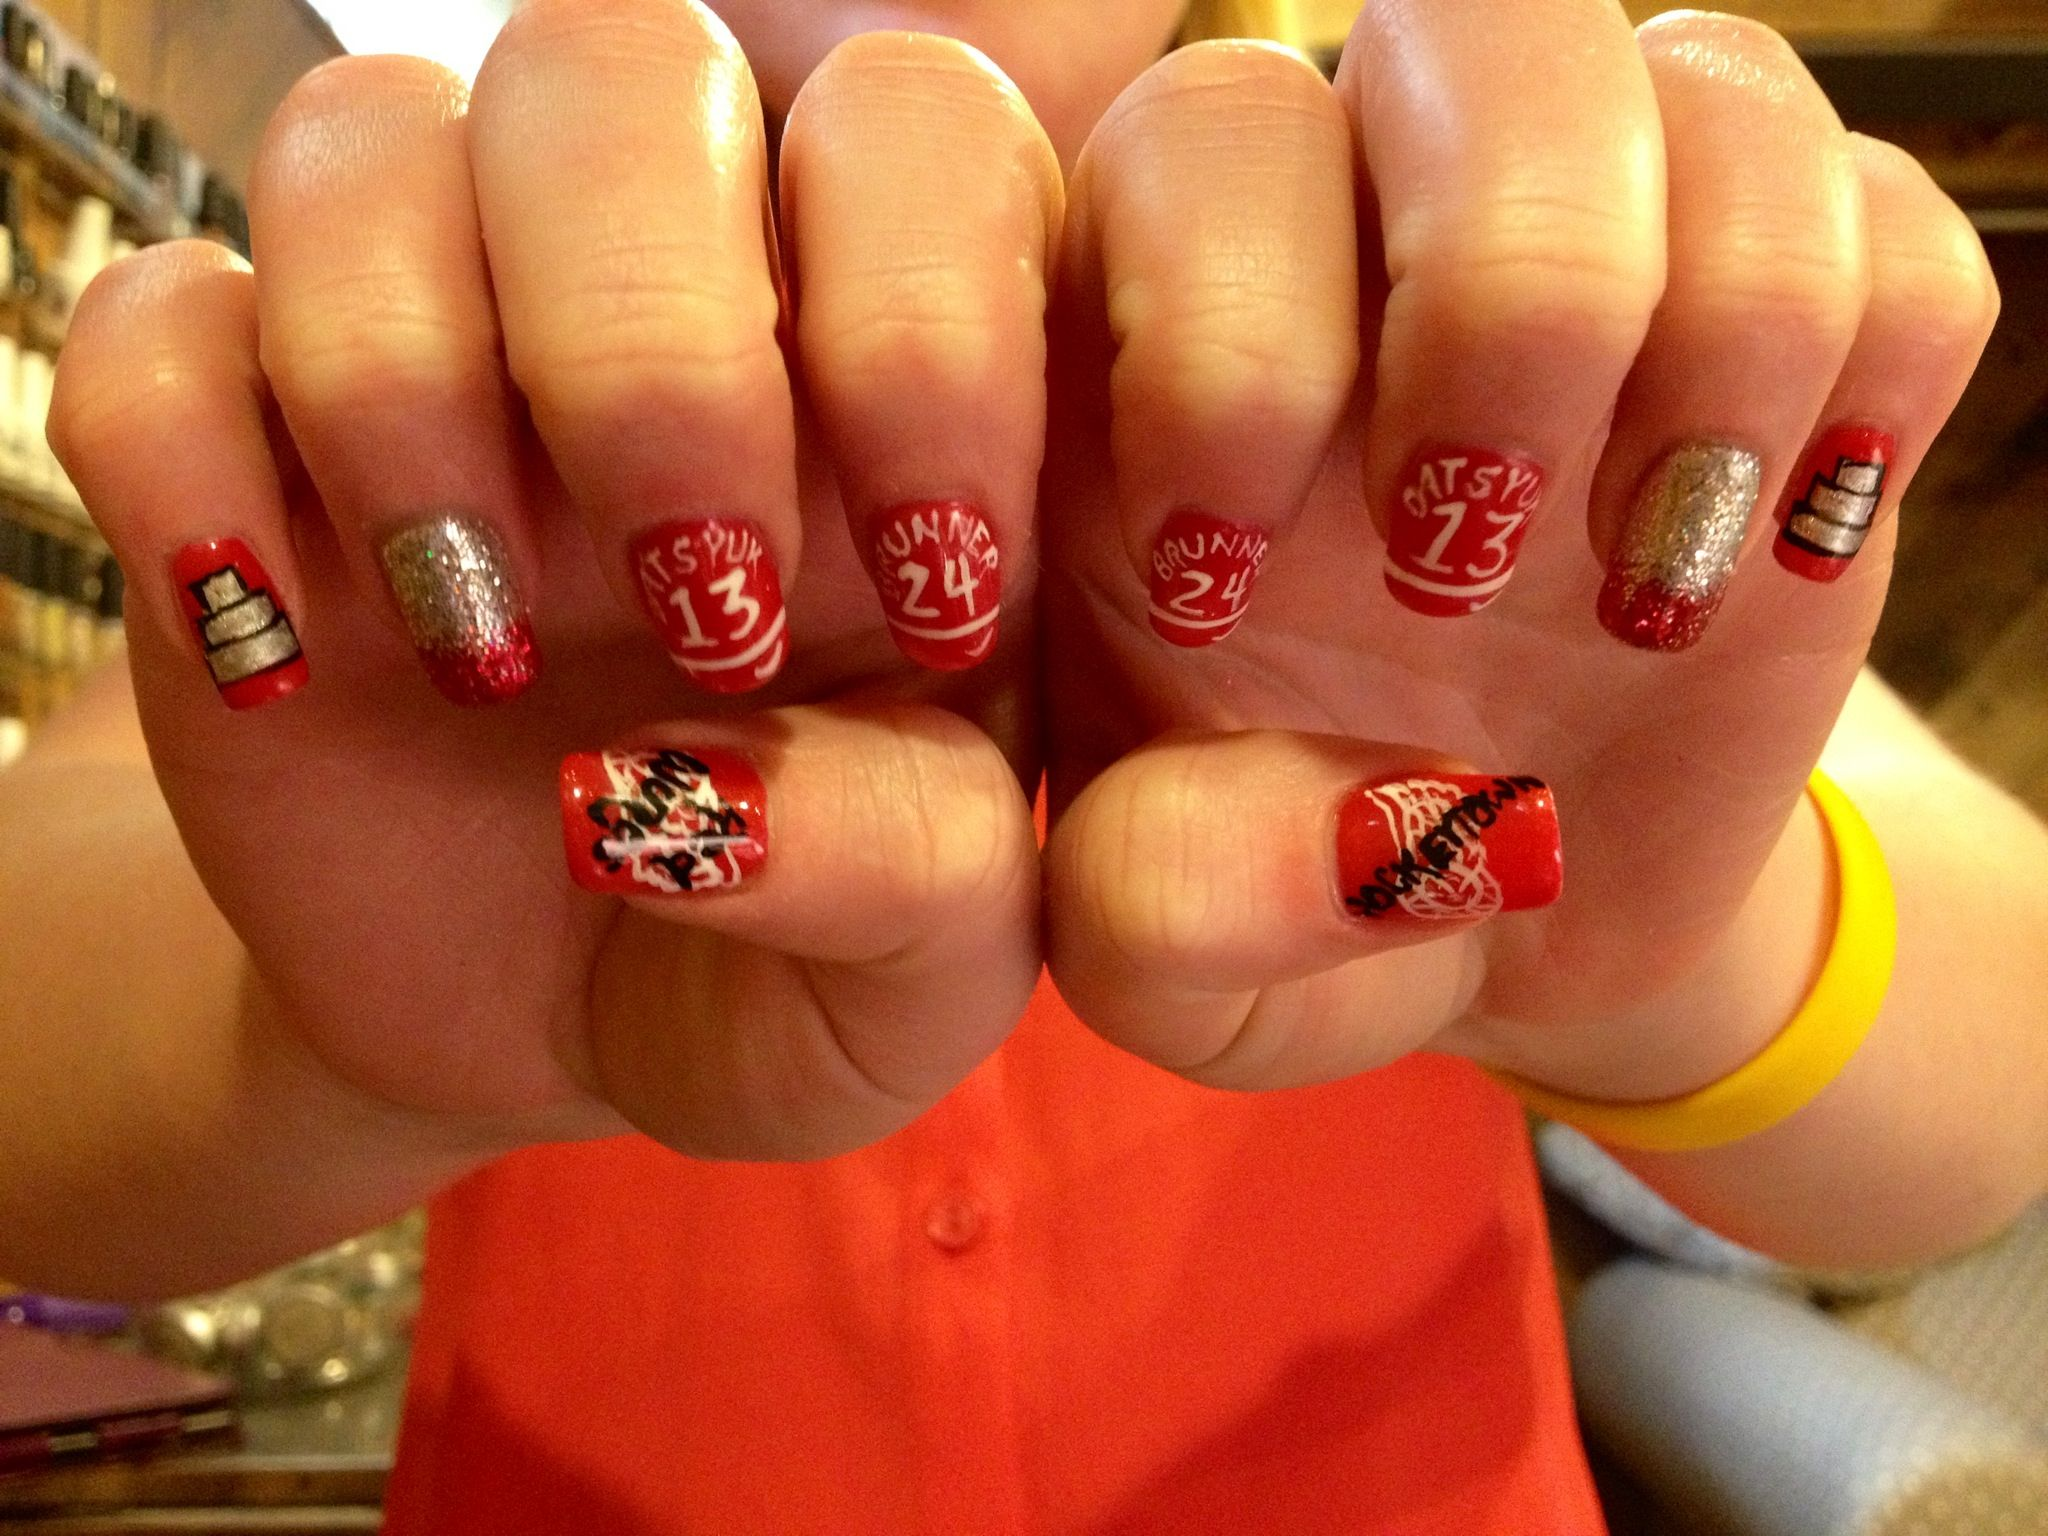 Detroit red wings nails nails media pinterest spt kynnet detroit red wings nails prinsesfo Choice Image